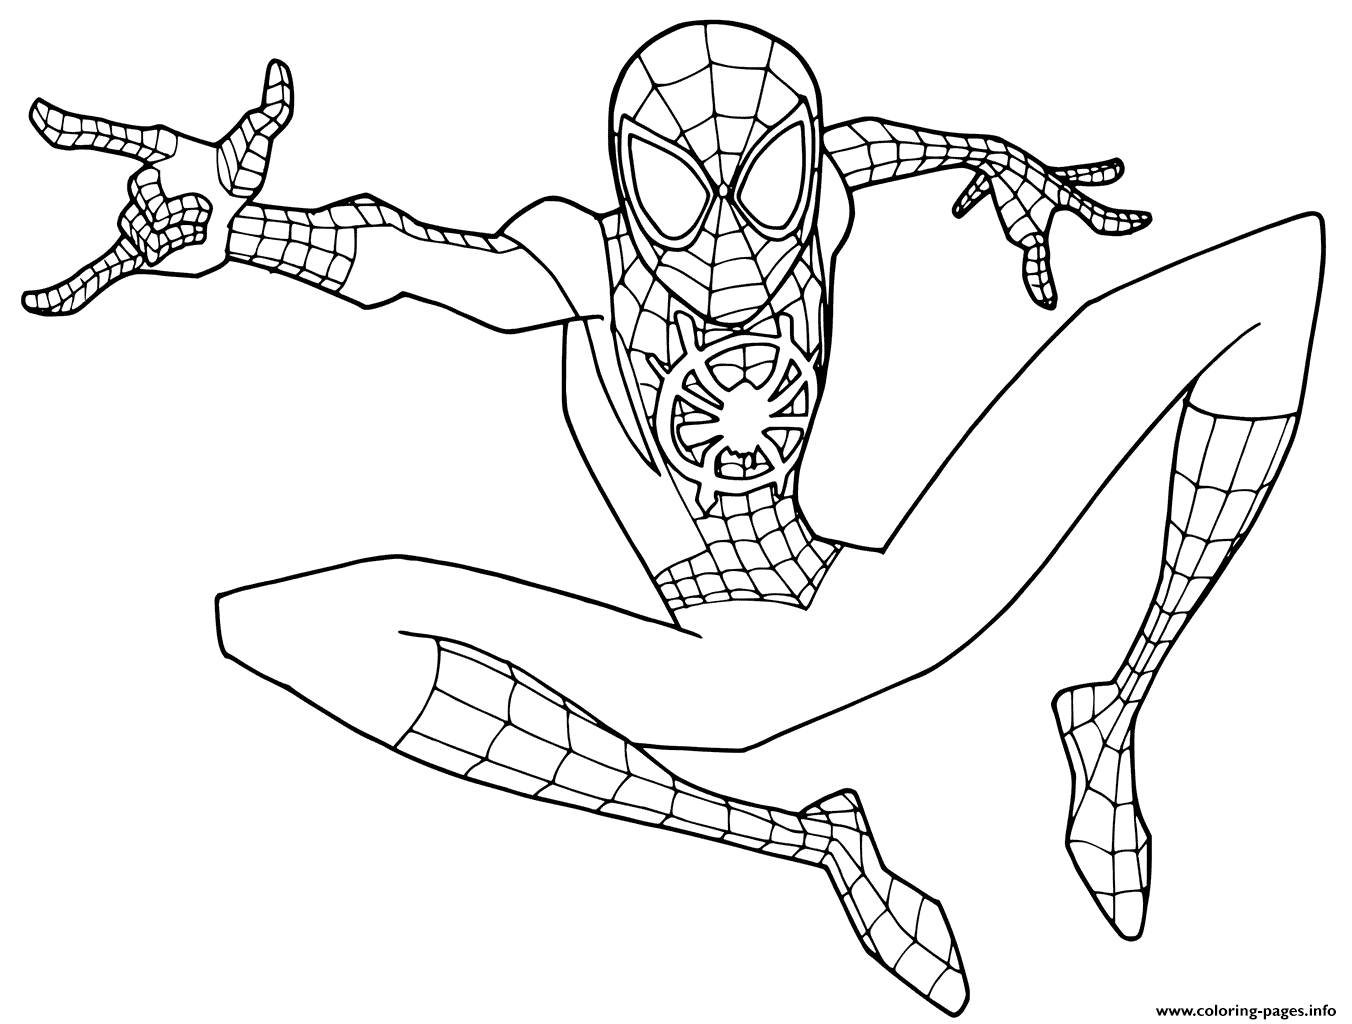 Print Young Spider Man Coloring Pages Spiderman Coloring Spider Coloring Page Superhero Coloring Pages